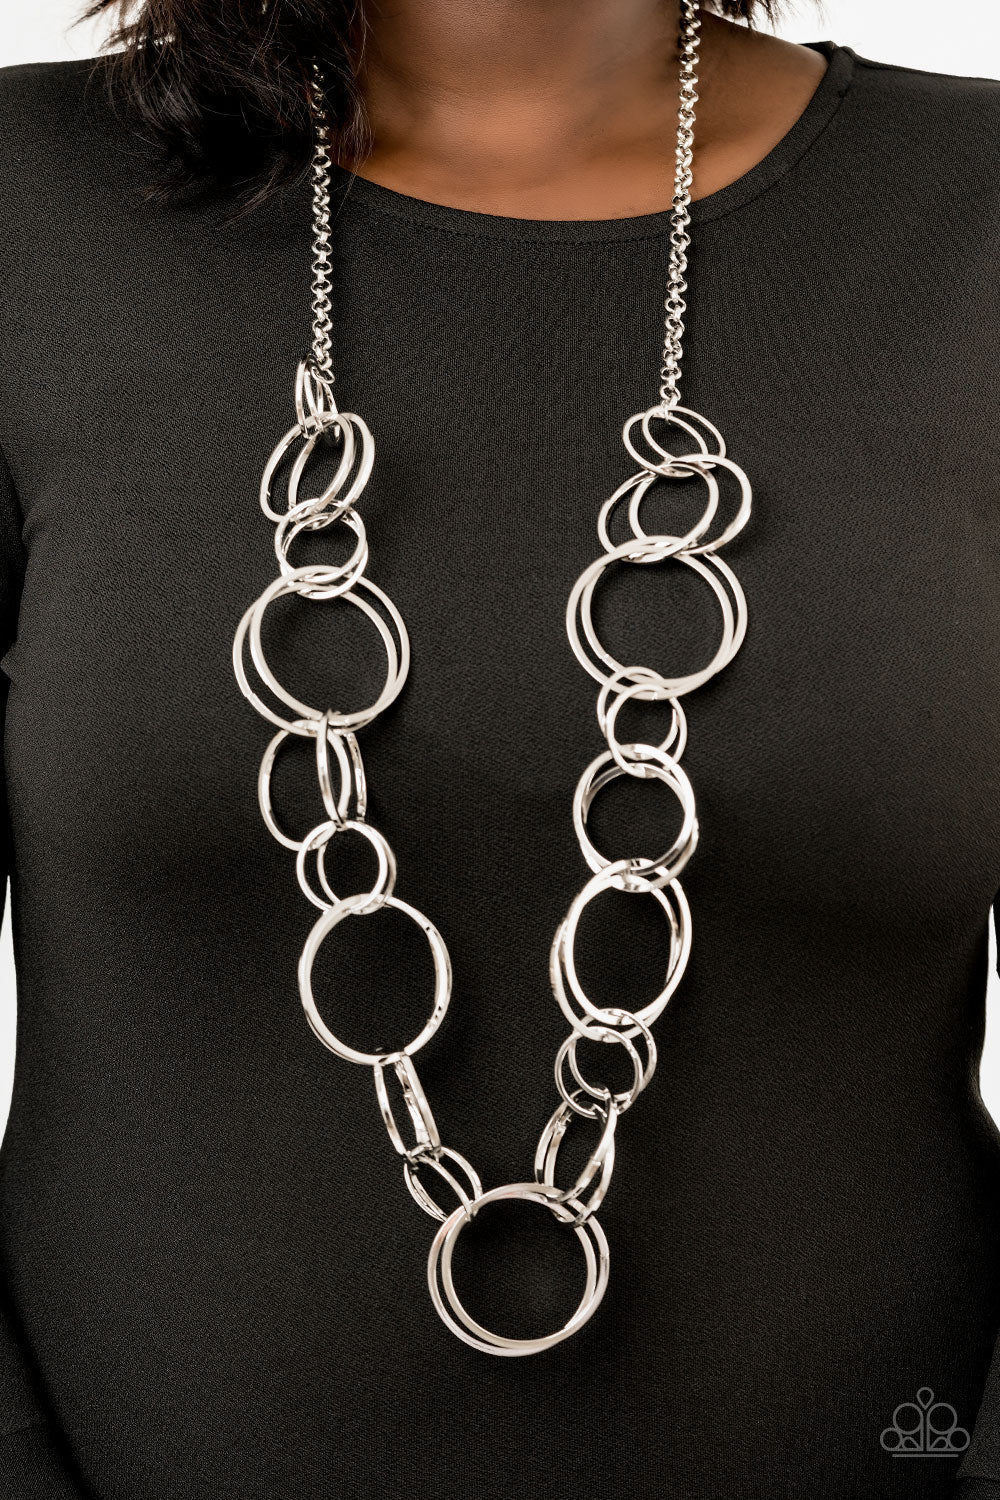 Paparazzi -  Natural-Born RINGLEADER - Silver Necklace  Set - Classy Jewels by Linda